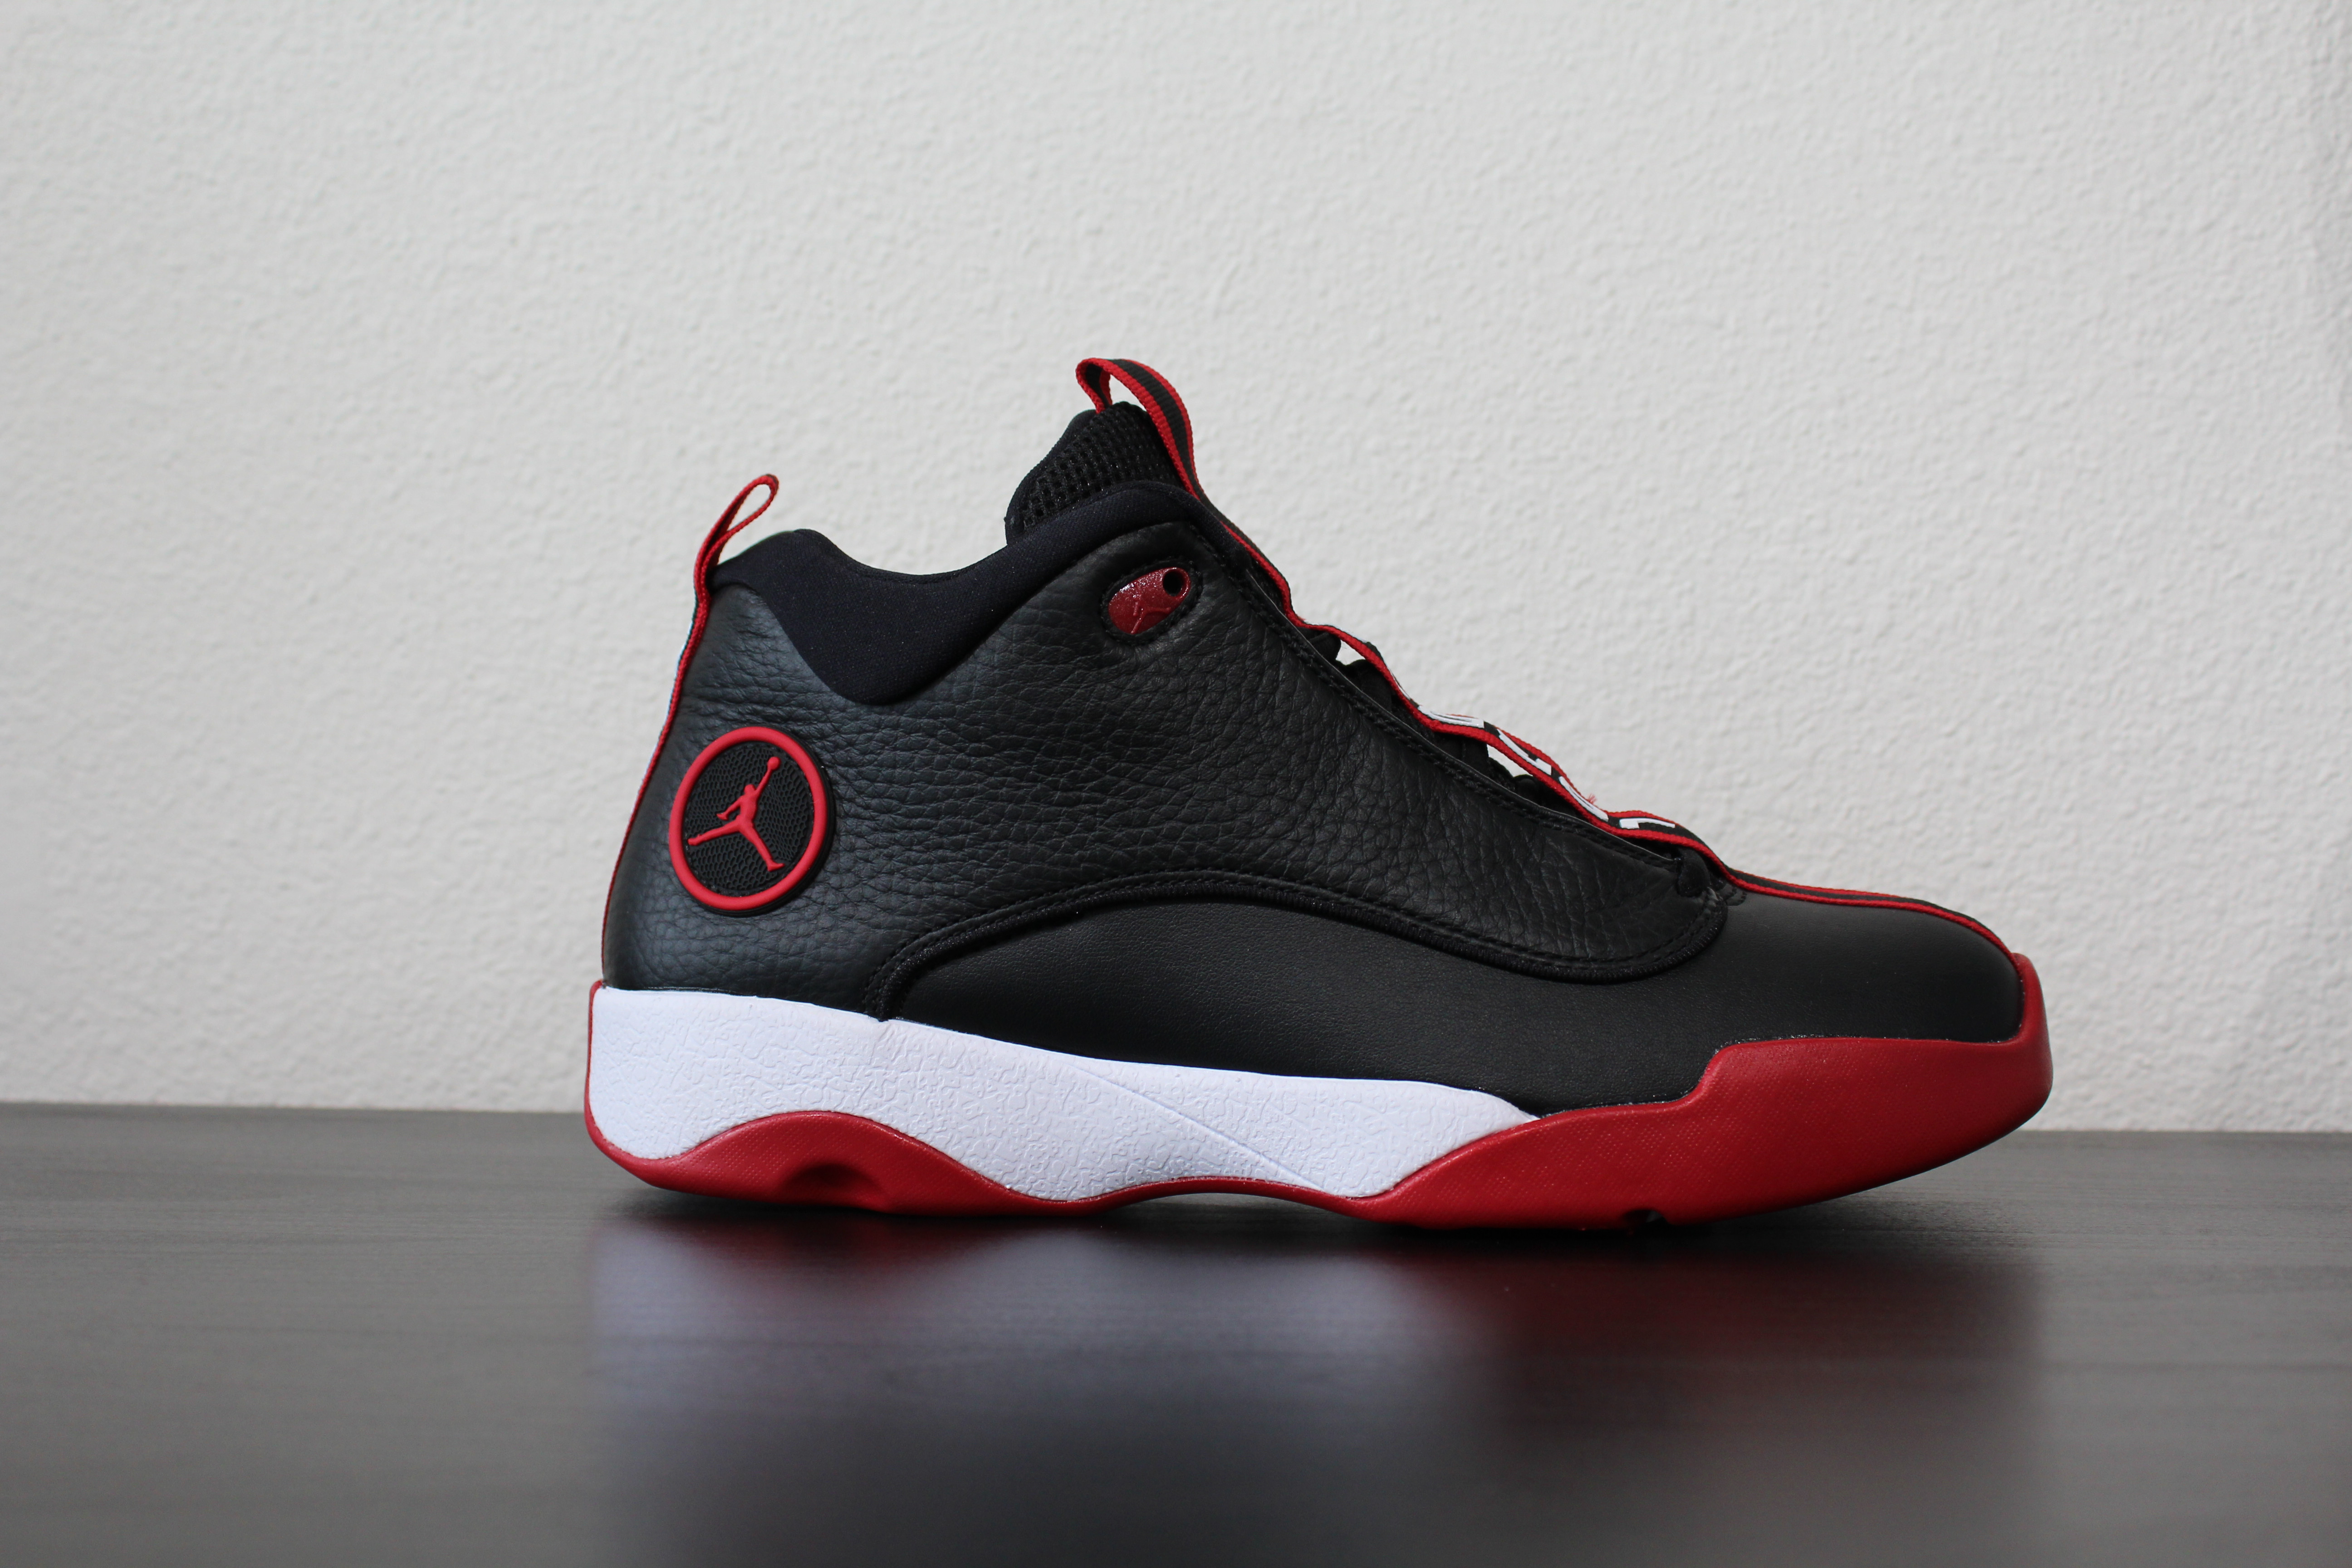 new product 2a7d1 ae14d germany nike air max buy online usa visa 45efa c3be0  where to buy jordan  jumpman pro quick 49557 df4ce